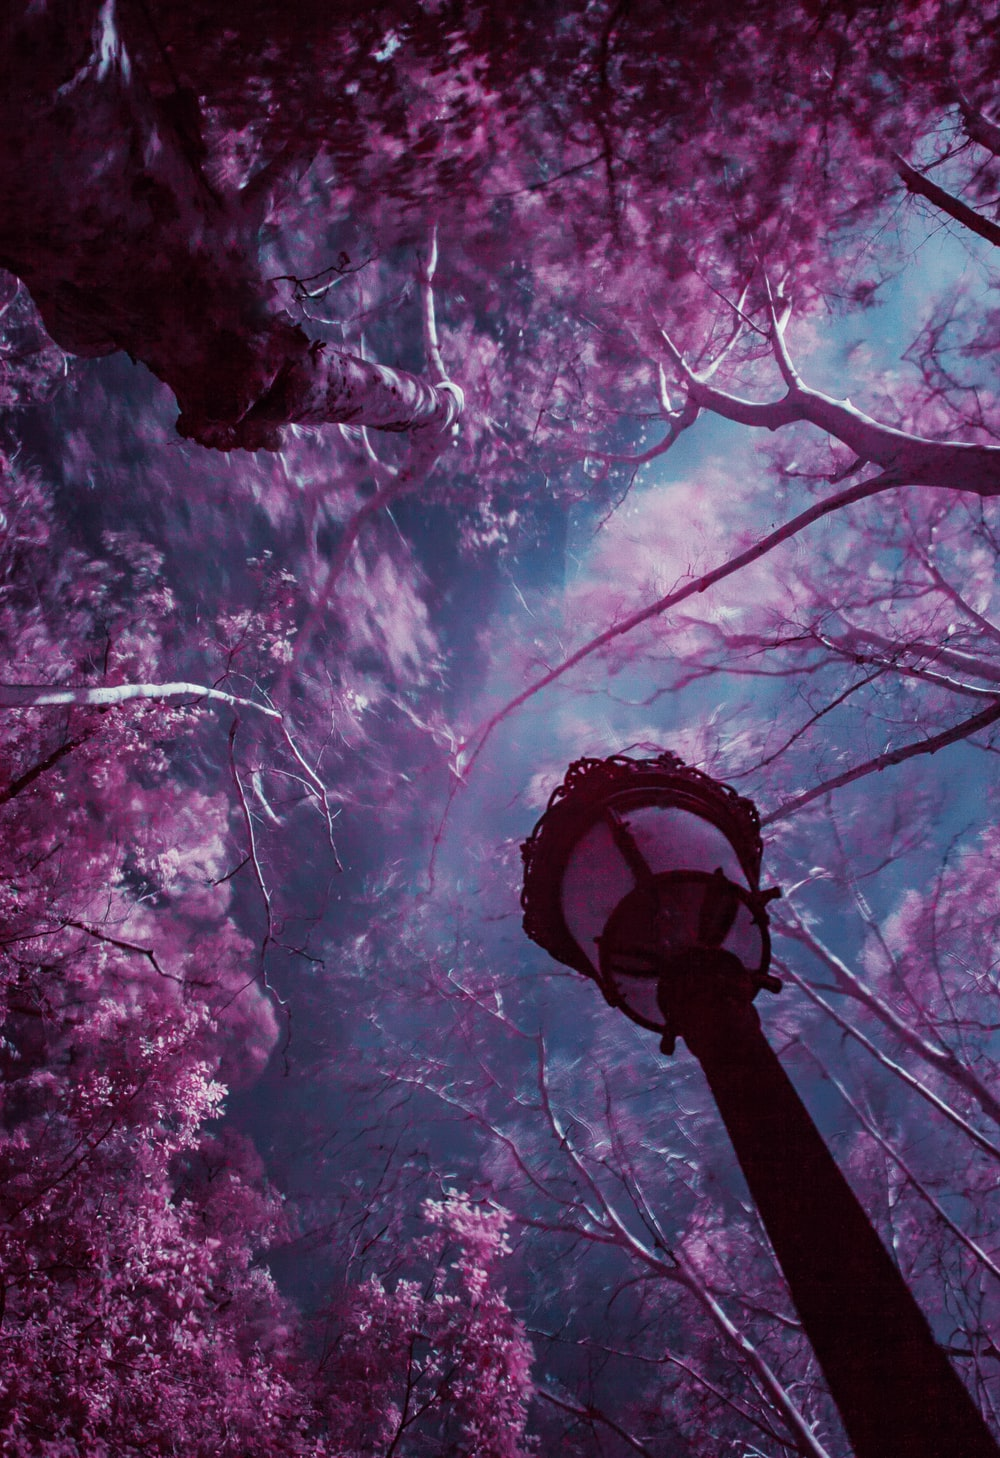 Japanese Cherry Blossom Pictures Hd Download Free Images On Unsplash